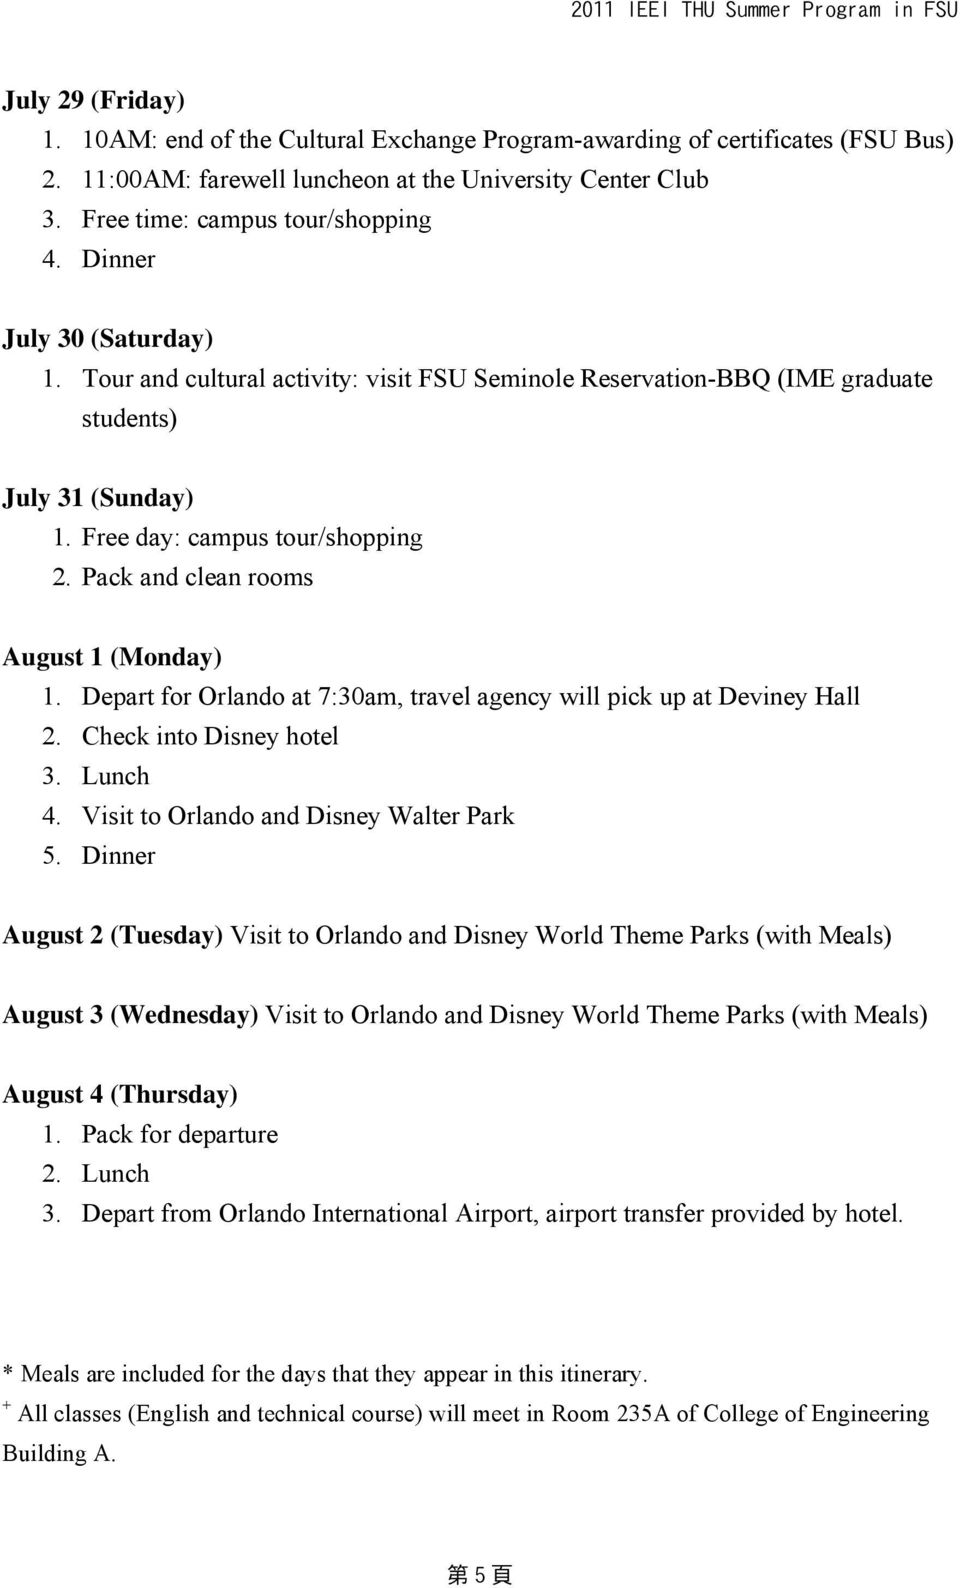 Pack and clean rooms August 1 (Monday) 1. Depart for Orlando at 7:30am, travel agency will pick up at Deviney Hall 2. Check into Disney hotel 3. Lunch 4. Visit to Orlando and Disney Walter Park 5.